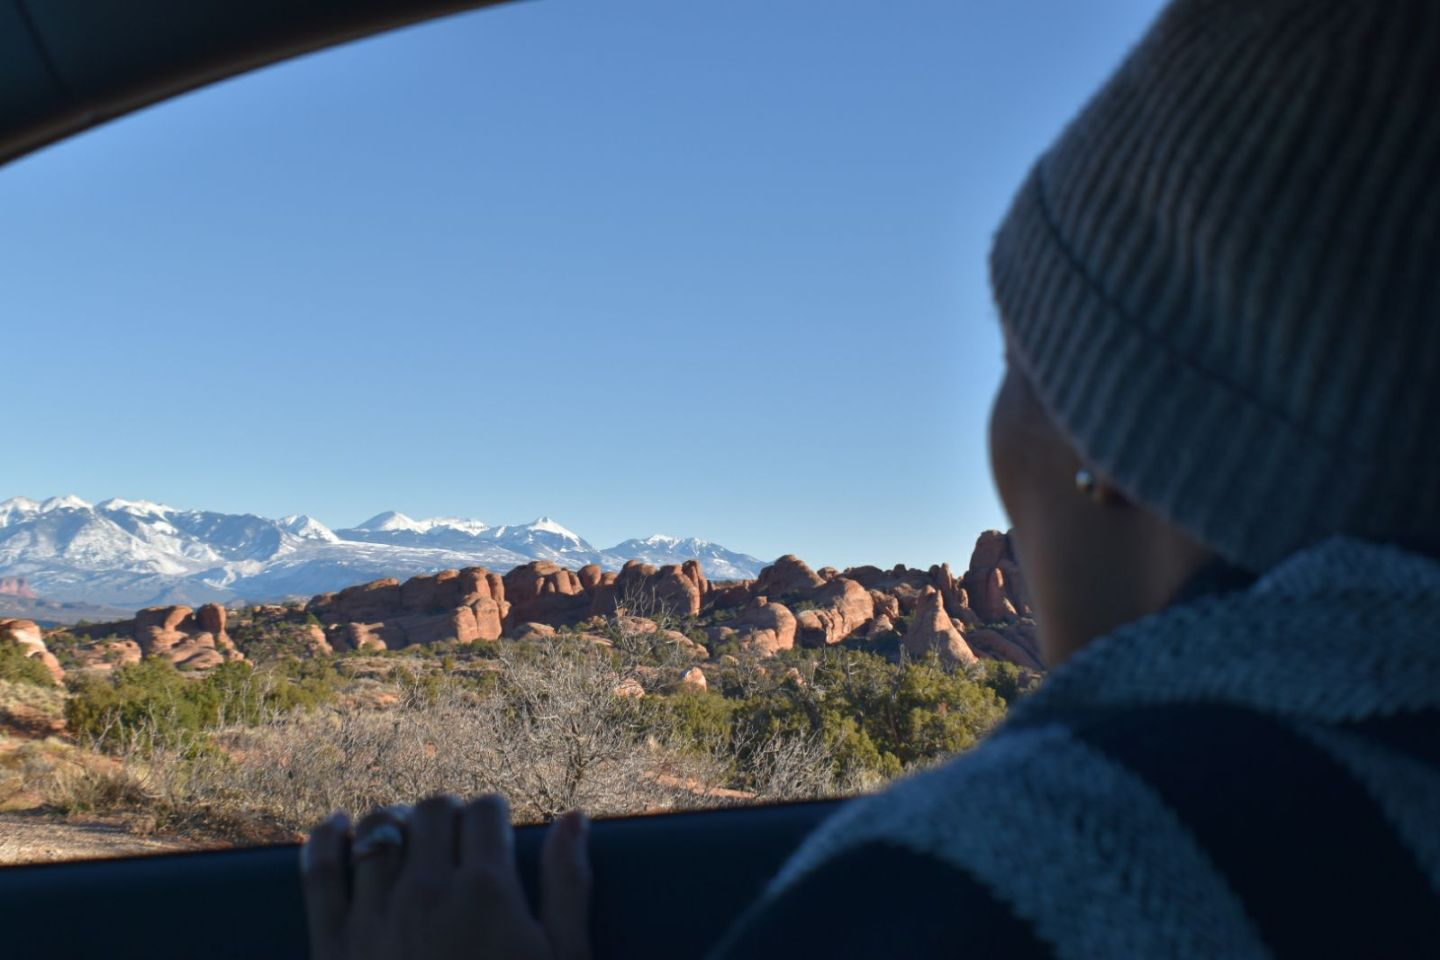 Illustrated by Sade - Views of Utah Arches National Park during road trip